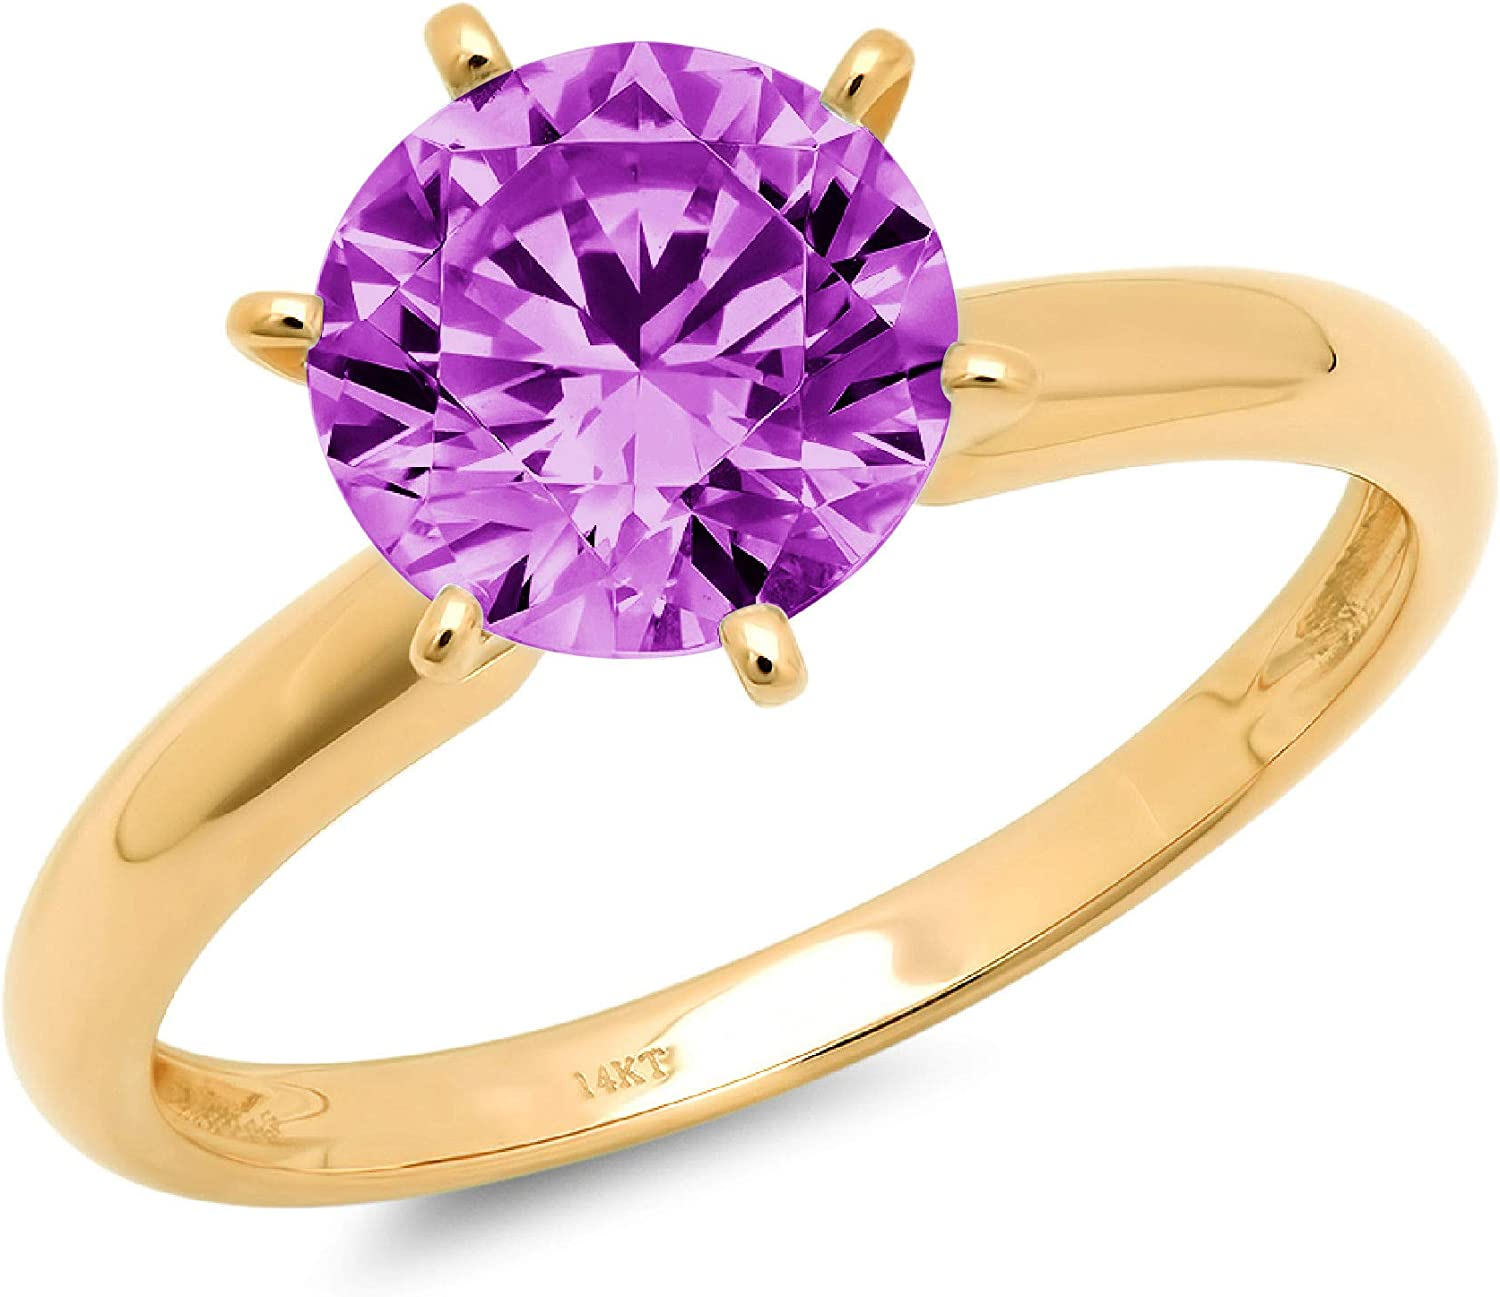 1.0 ct Brilliant Round Cut Solitaire Flawless Simulated Purple Alexandrite CZ Ideal VVS1 6-Prong Engagement Wedding Bridal Promise Anniversary Designer Ring in Solid 14k yellow Gold for Women